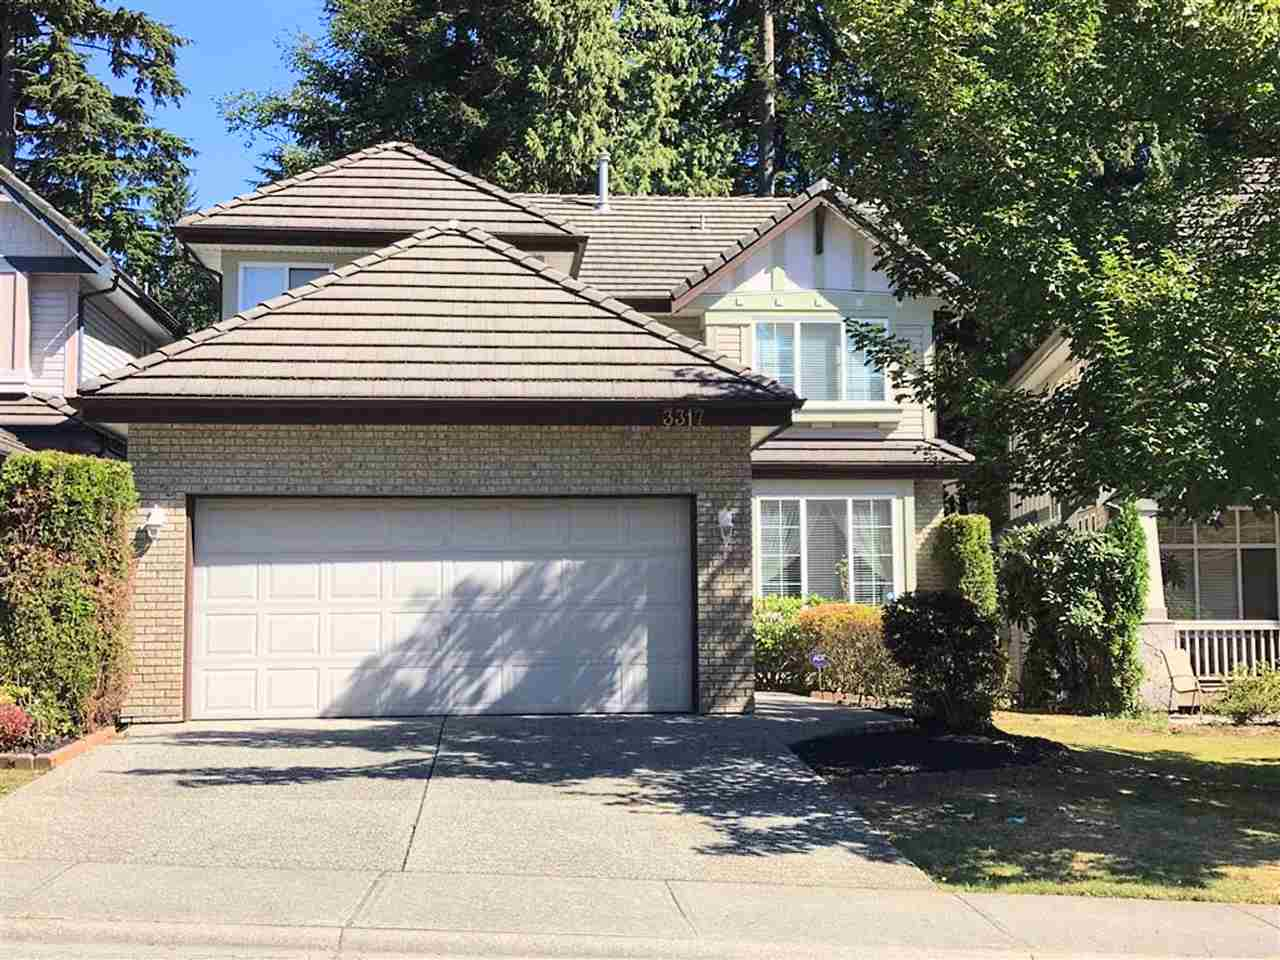 "Main Photo: 3317 CHARTWELL GREEN in Coquitlam: Westwood Plateau House for sale in ""Chartwell Green"" : MLS® # R2203108"